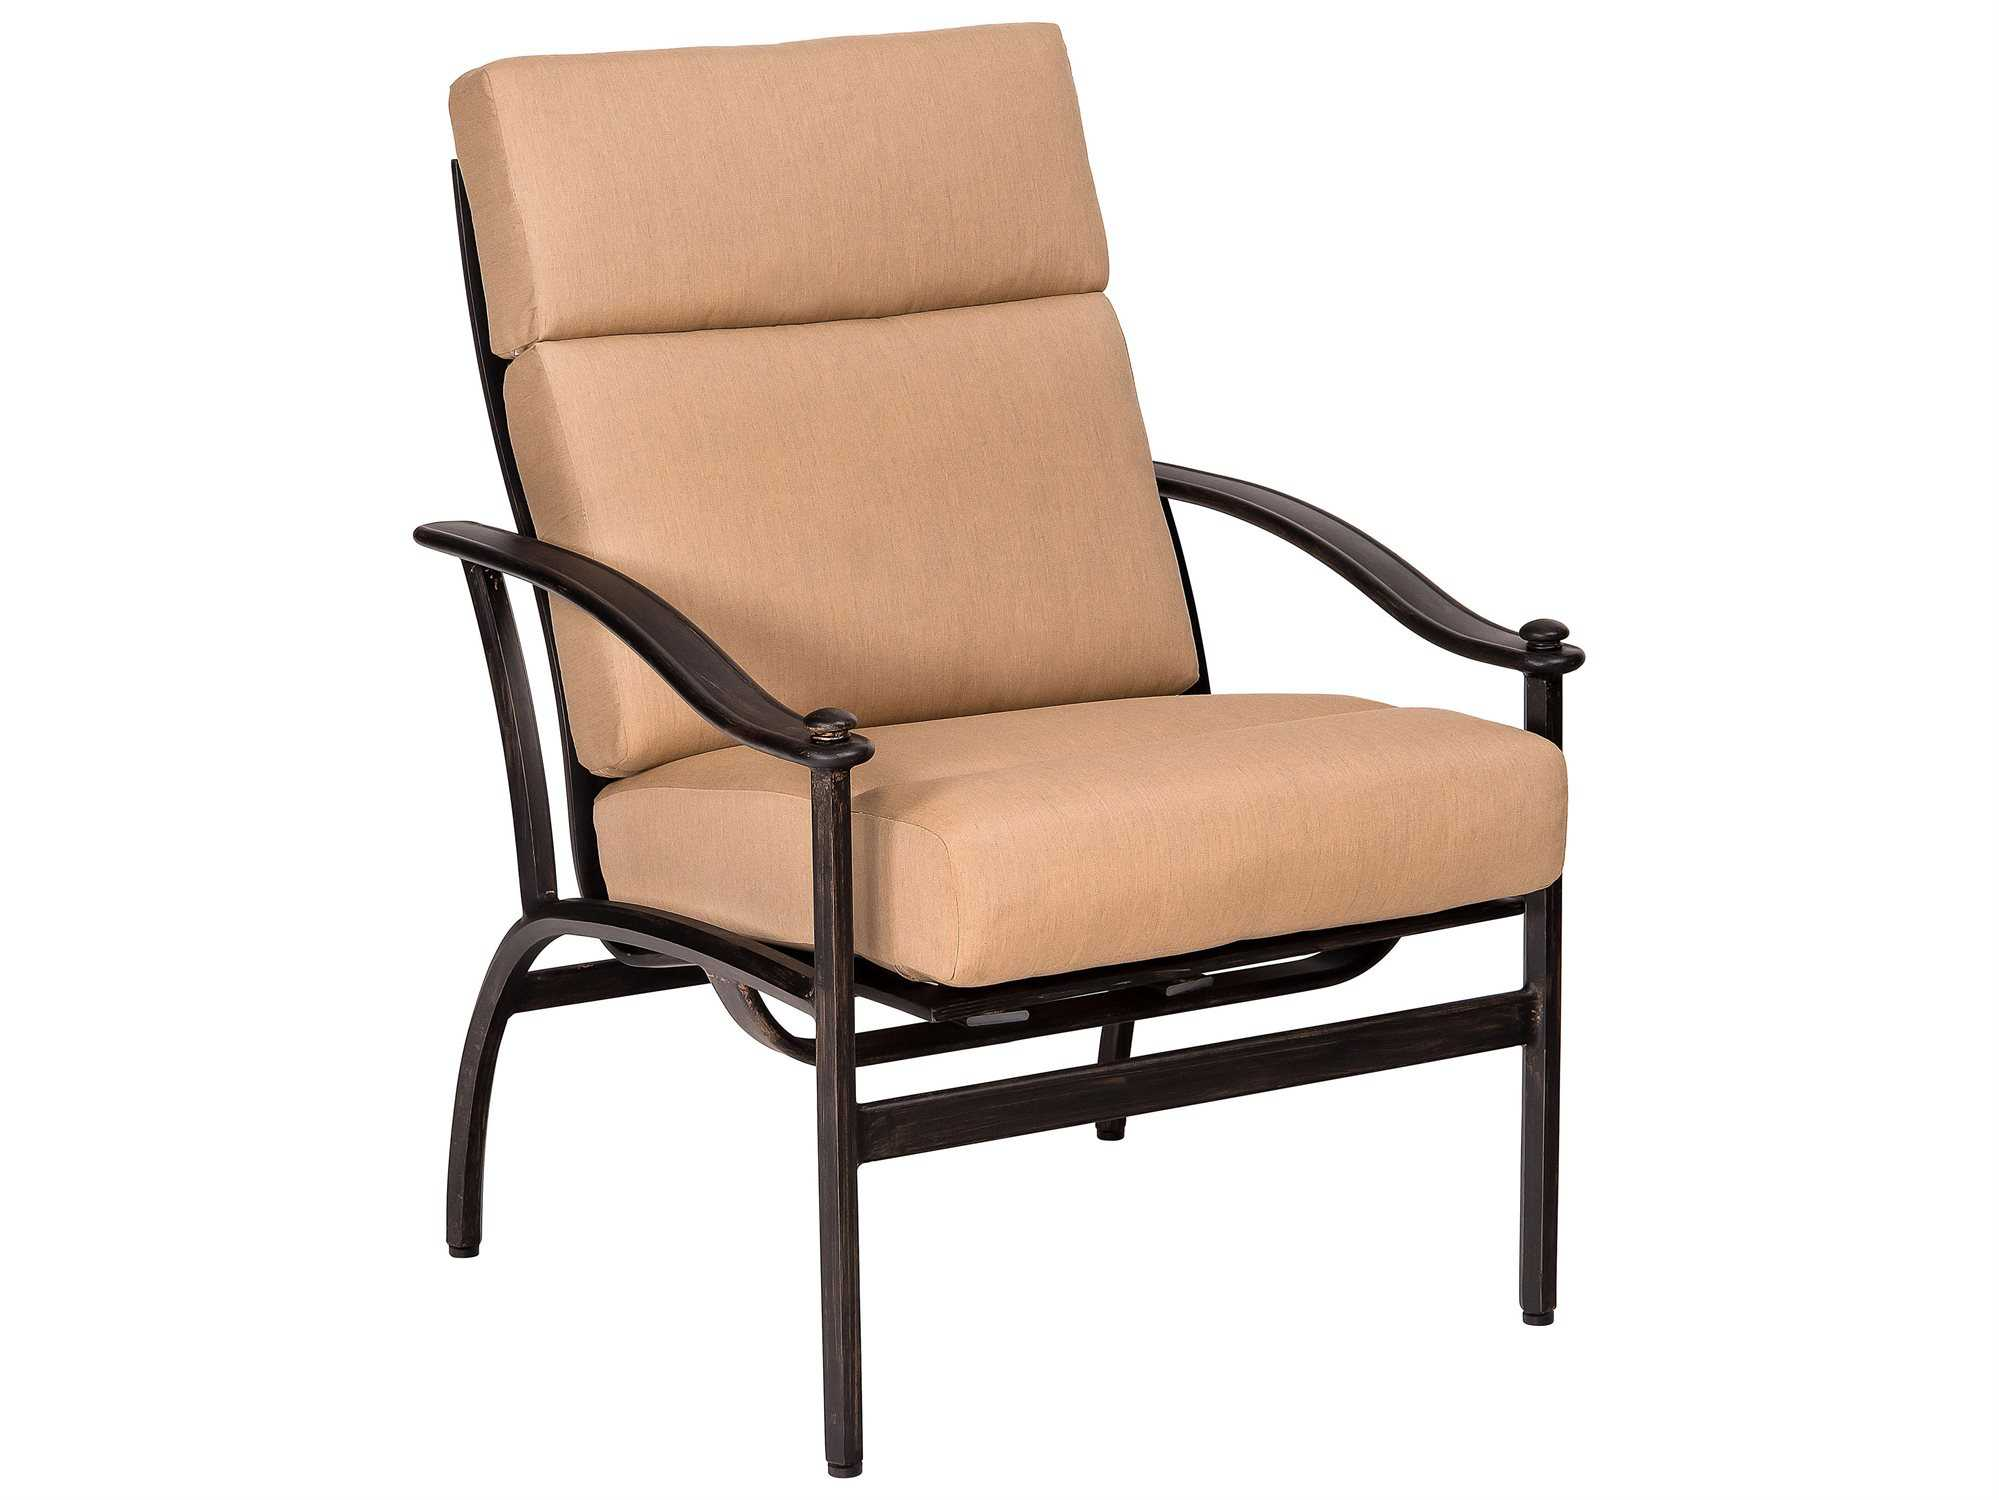 Woodard Nob Hill Internal Rocking Dining Chair Replacement